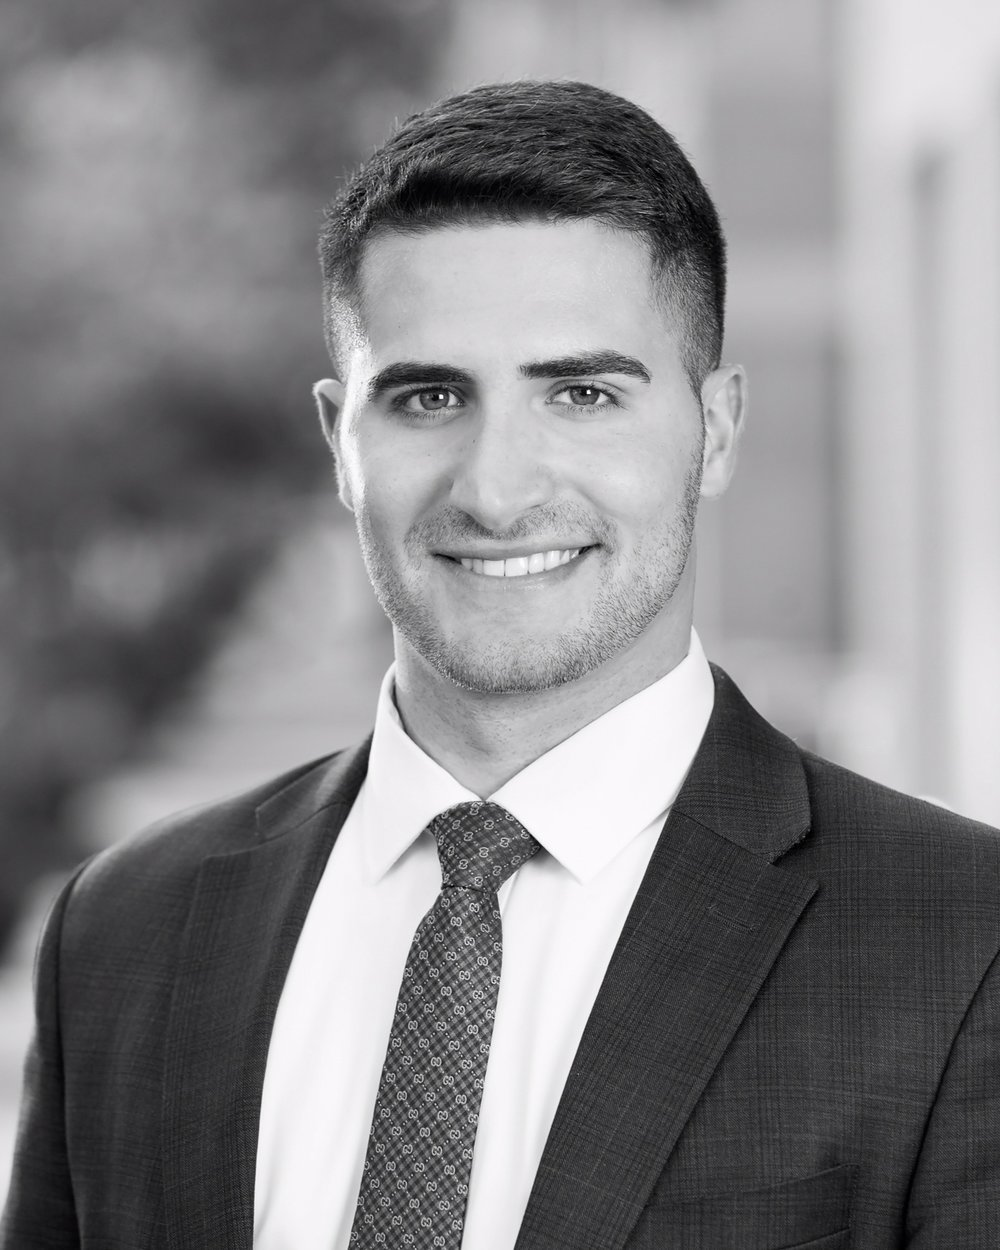 "Mattia D'Affuso - Associate Agent | +1.240.464.5626mdaffuso@ttrsir.comMattia was born and raised in Washington D.C. and holds two bachelor's degrees from James Madison University and a master's degree from The University of Tennessee. His extensive background in marketing, customer service and sales paired with his attention to detail, knowledge and integrity, make him an ideal candidate to help buyers and sellers across the D.C metropolitan area.He is a proud member of the award-winning team, The Rob and Brent Group, who consistently ranks #1 Group in D.C. at TTR Sotheby's International Realty with over $115 Million in yearly sales and No. 3 in D.C. and No. 101 in the U.S. as ranked by Real Trends - The Wall Street Journal. Other awards include Best Agents & Top Producers by Washingtonian Magazine and Washington Post's ""Top Producers"".Having spent time living in Italy, Mattia has a passion for history, architecture, language and culture. He's a native Italian speaker and a proud member of the National Italian American Foundation. When not working in real estate, Mattia enjoys the outdoors, trying new restaurants and traveling the world. He is a classically trained singer and loves all-things related to music and the arts. He serves on the Board of Director's of Washington National Opera's BravO, is a member of Pi Kappa Lambda Music Society and founded a non-profit organization dedicated to community enrichment through the arts.Whether buying or selling, Mattia promises to provide the highest level of service, attention and dedication to his clients."